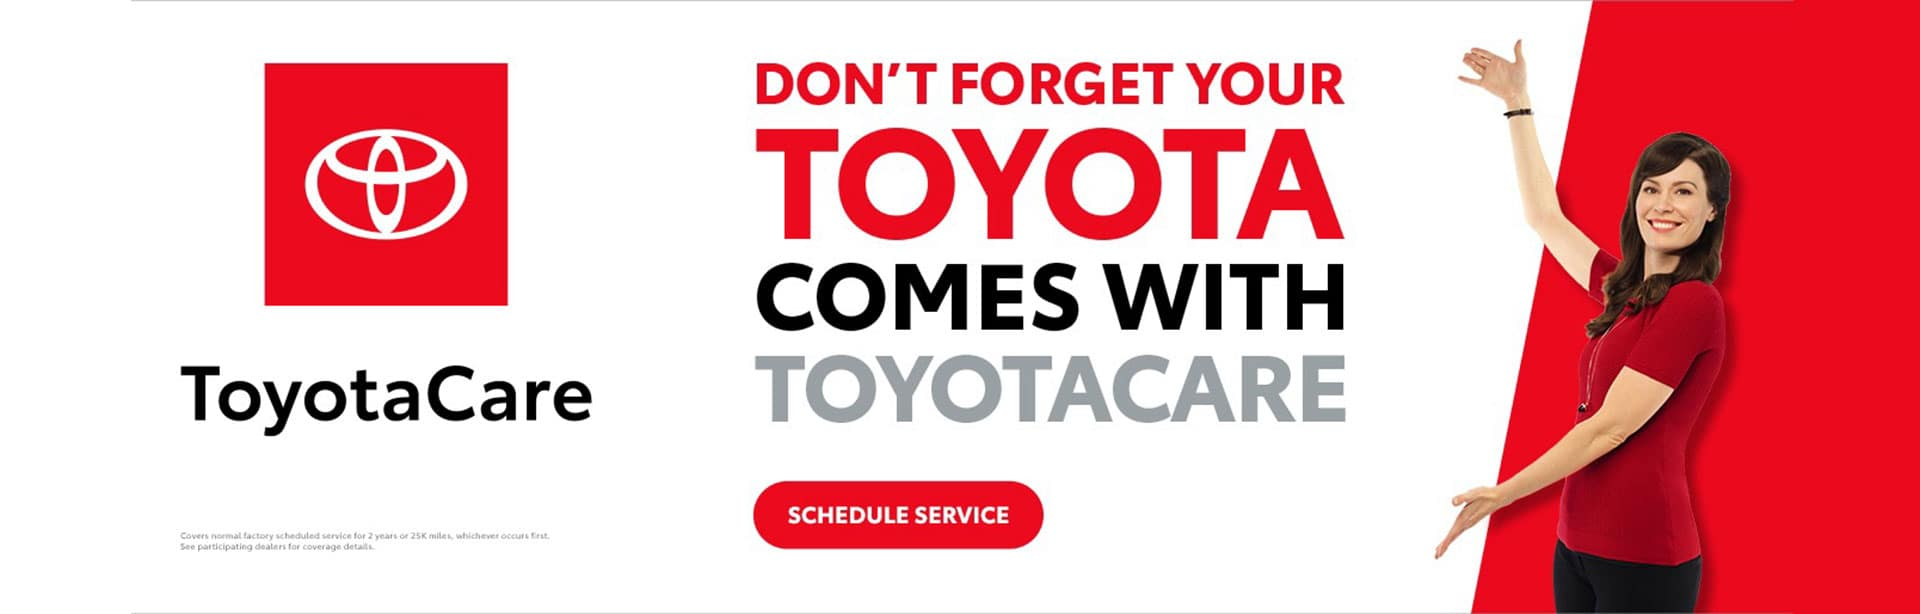 Don't forget your Toyota comes with ToyotaCare